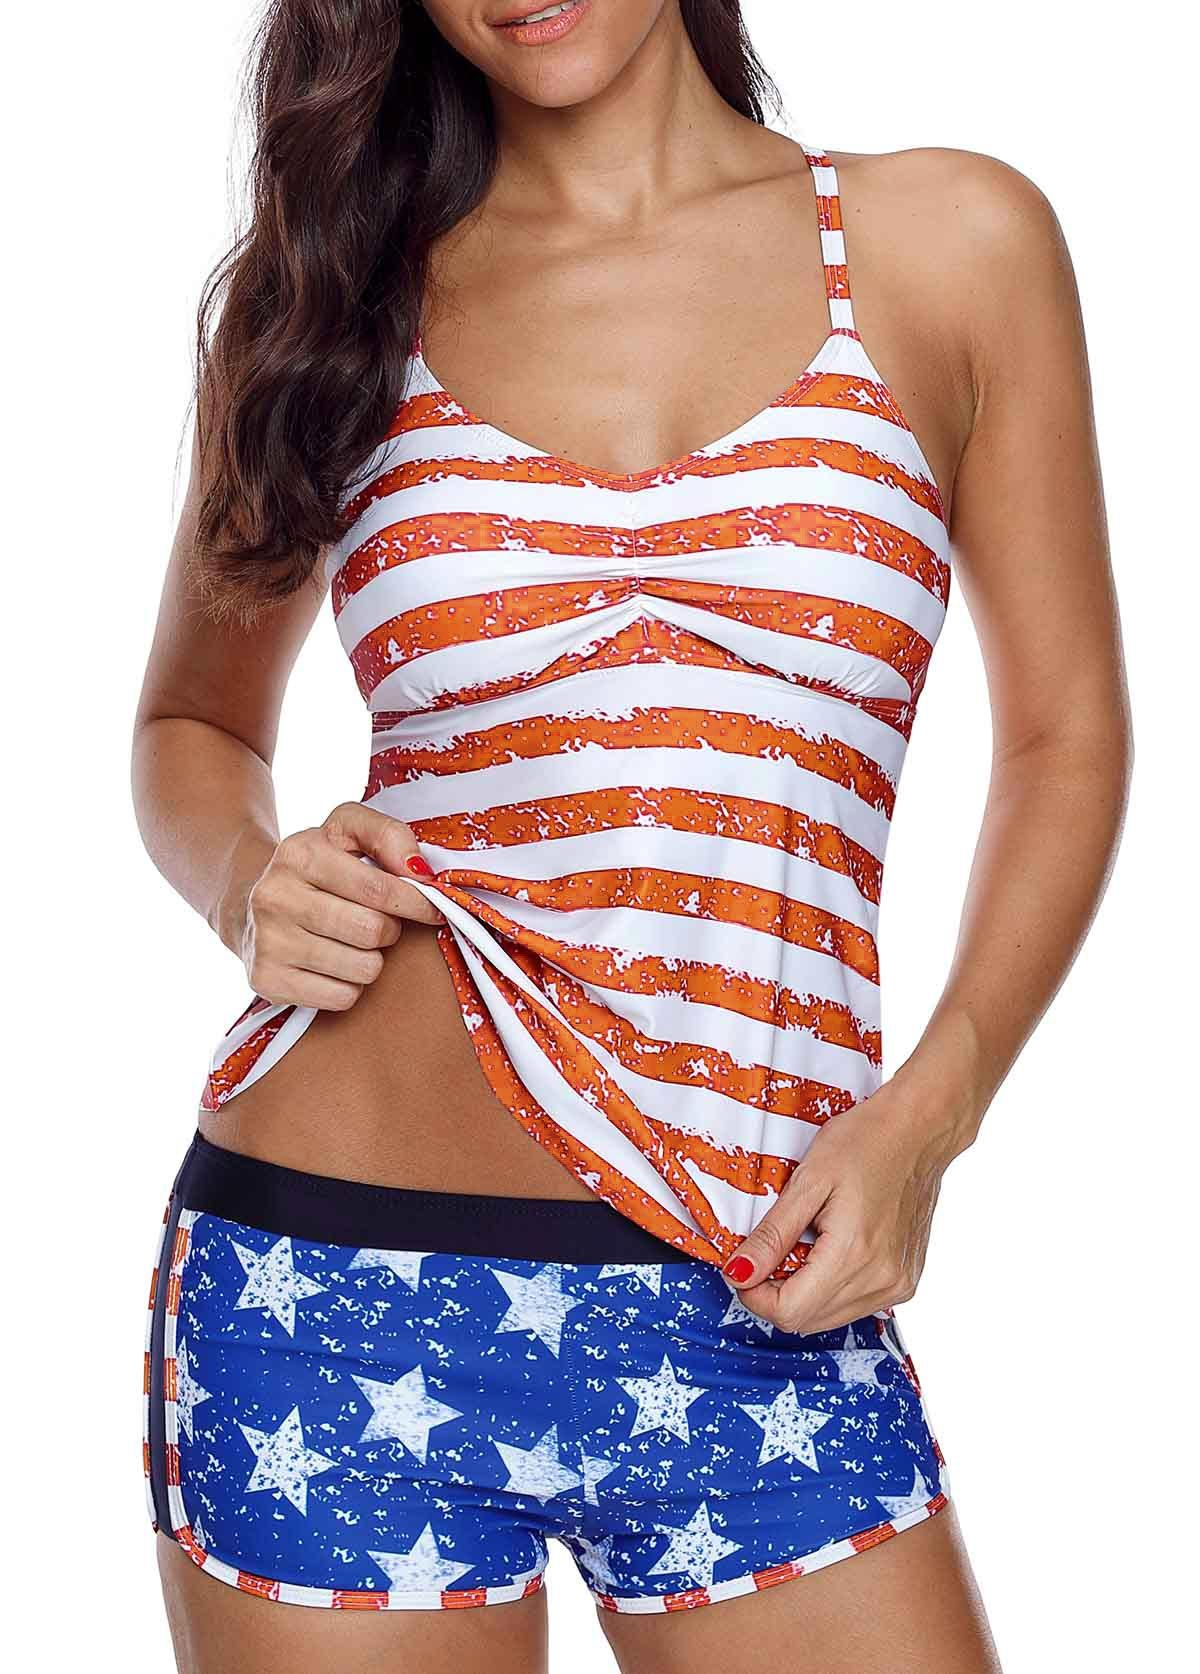 4635d07c71 Cutout Striped Orange Tankini Top and Blue Shorts | Rotita.com - USD $29.28